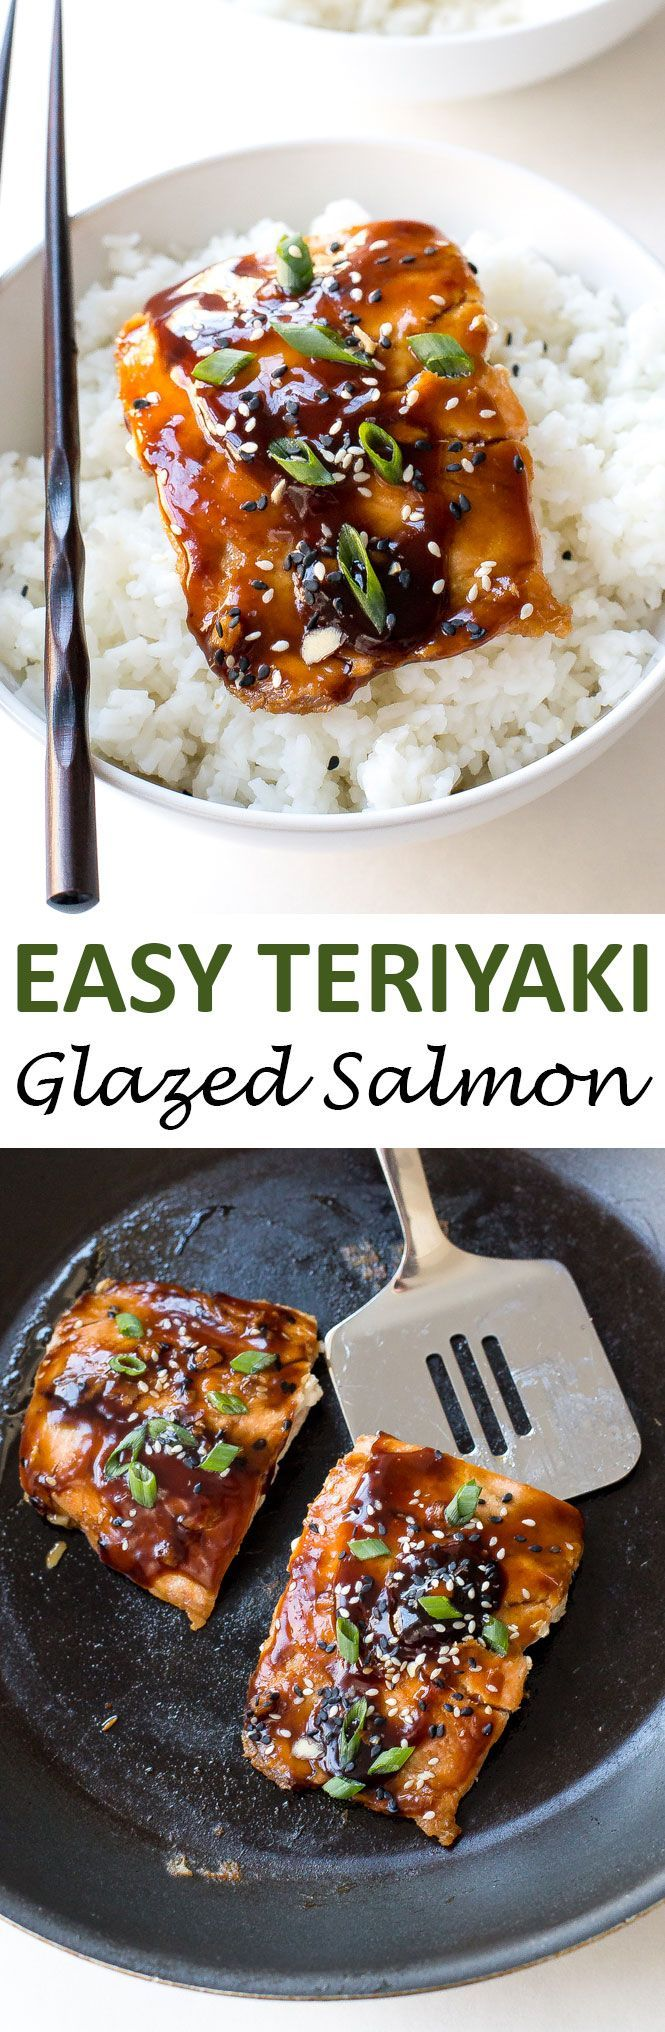 Easy Teriyaki Salmon pan-fried to perfection and served with a homemade teriyaki sauce! Serve with rice and veggies to make it a meal! | chefsavvy.com #recipe #teriyaki #salmon #seafood